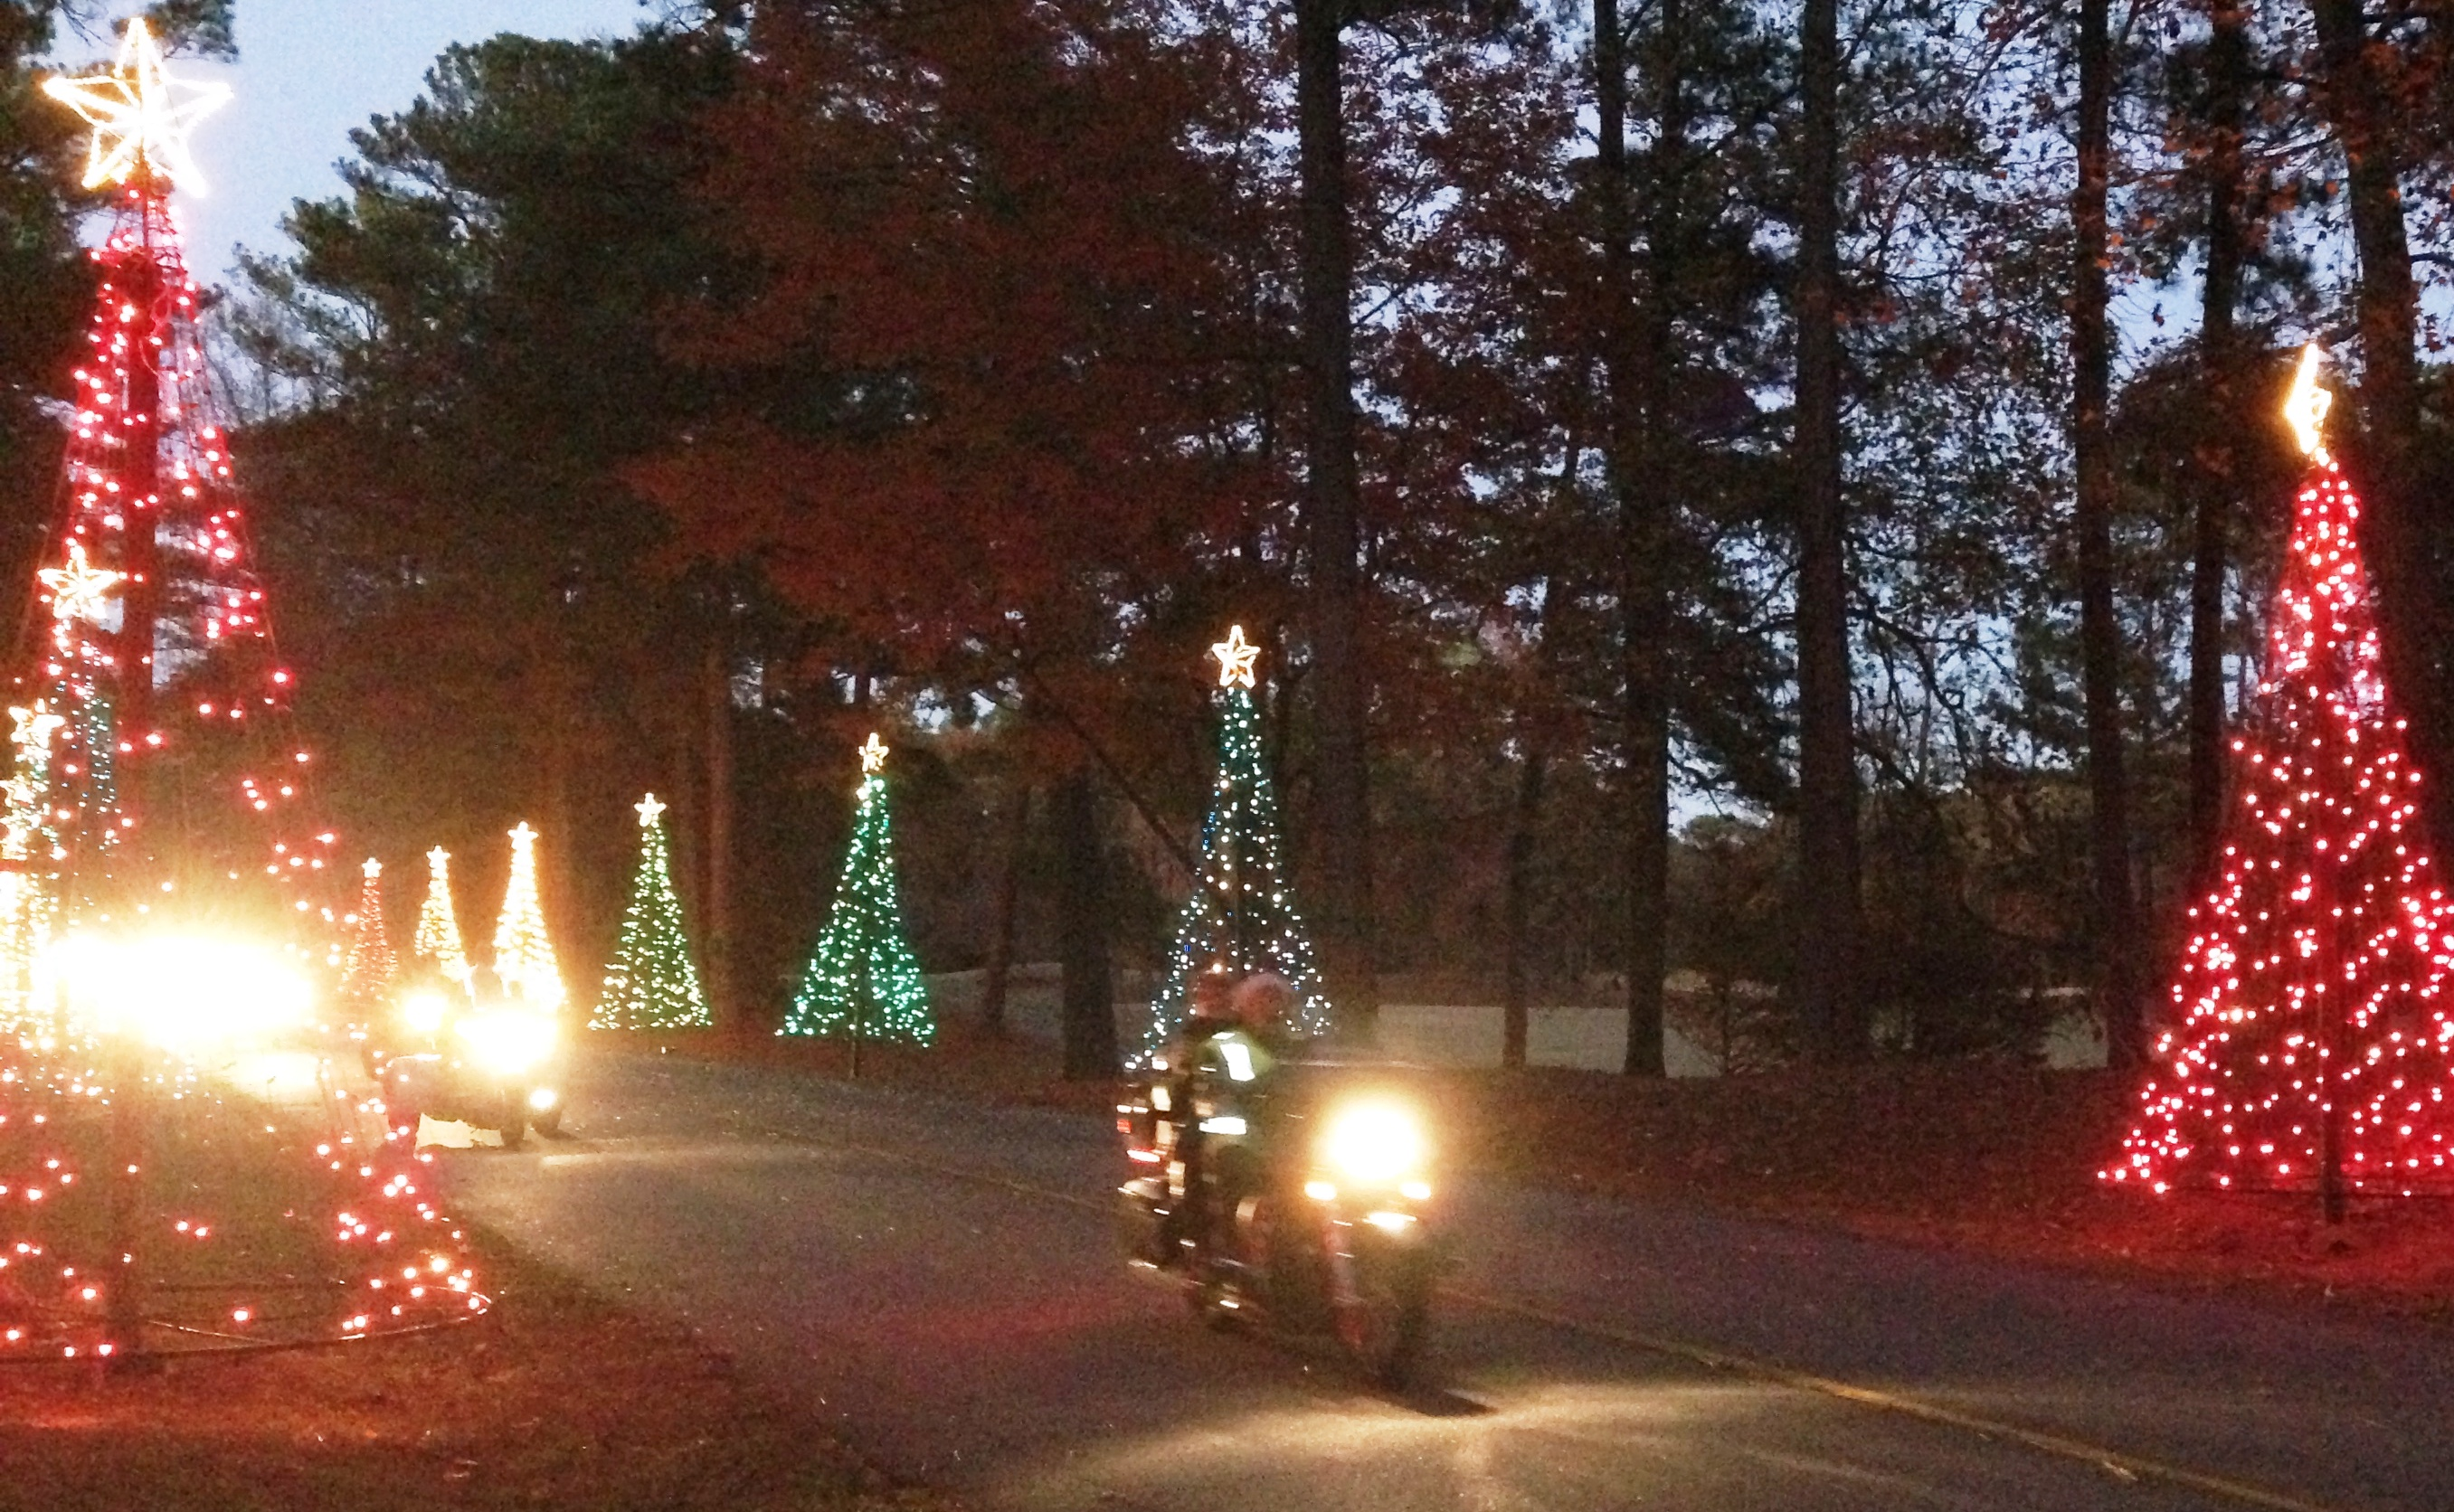 Tickets For Motorcycle Night At Callaway Gardens In Pine Mountain From Showclix